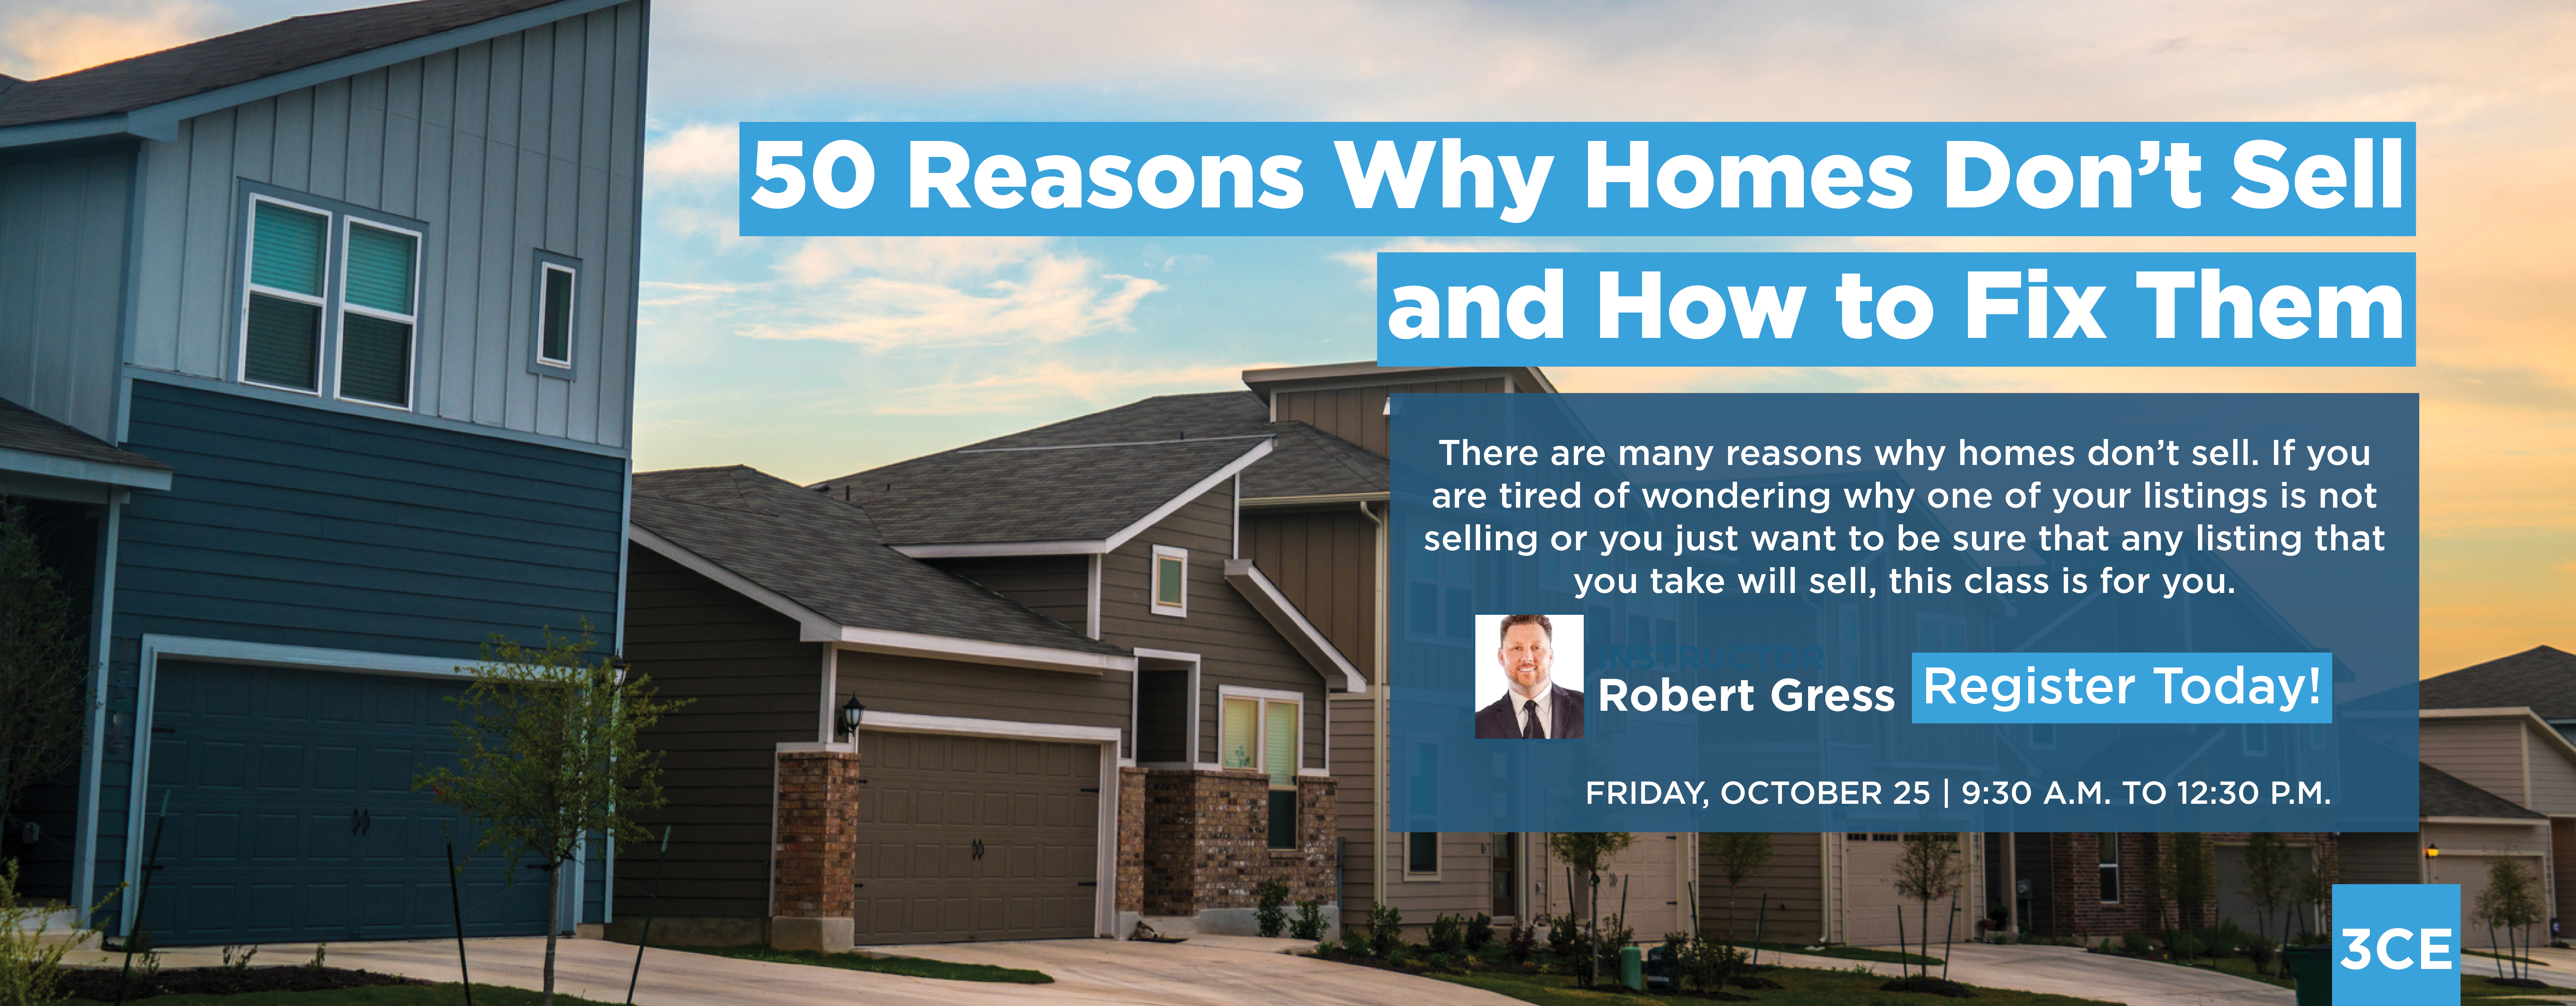 50 Reasons Why Homes Don't Sell and How to Fix Them